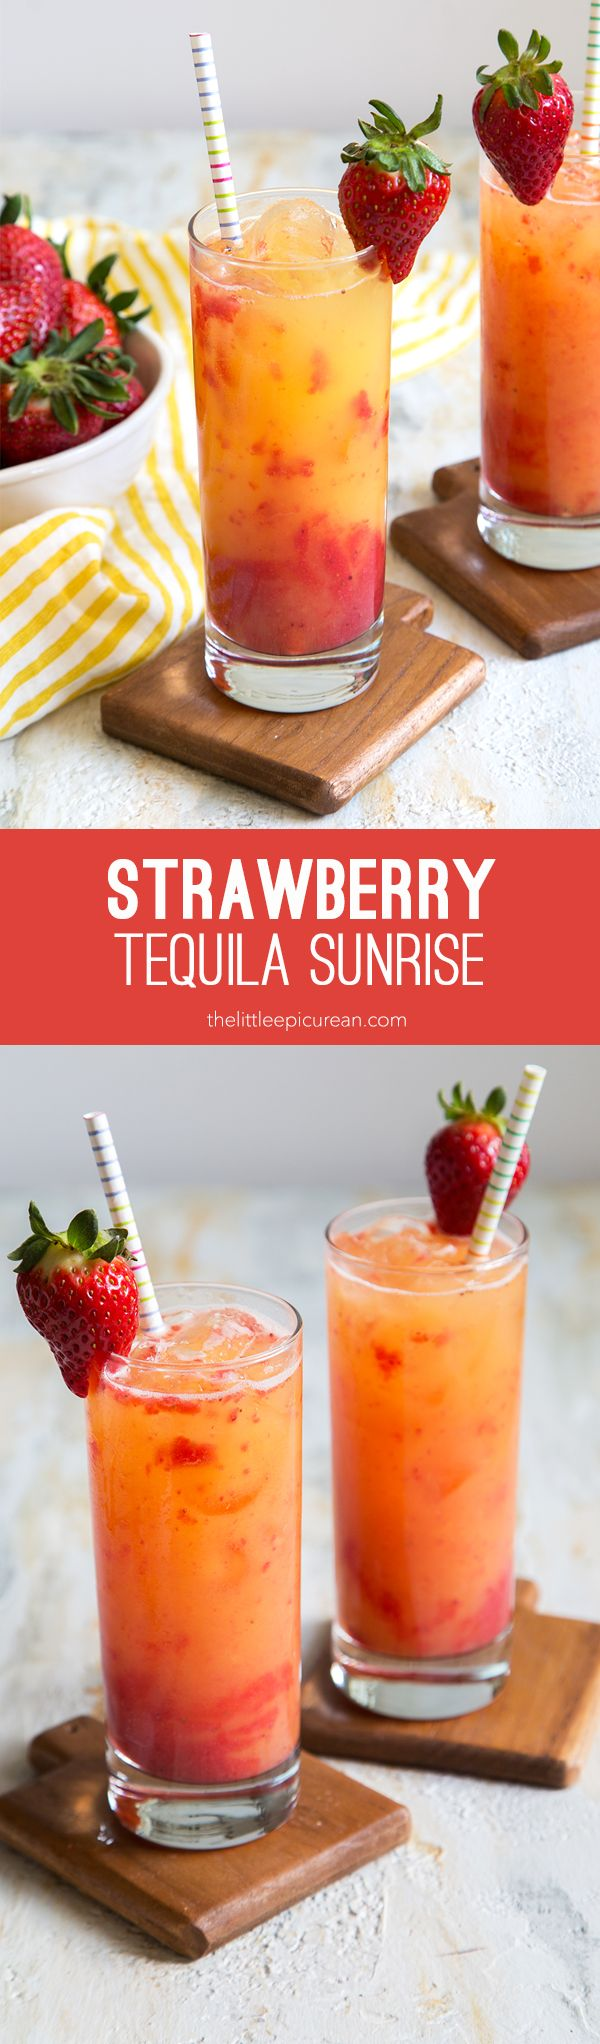 Strawberry Tequila Sunrise #tequiladrinks